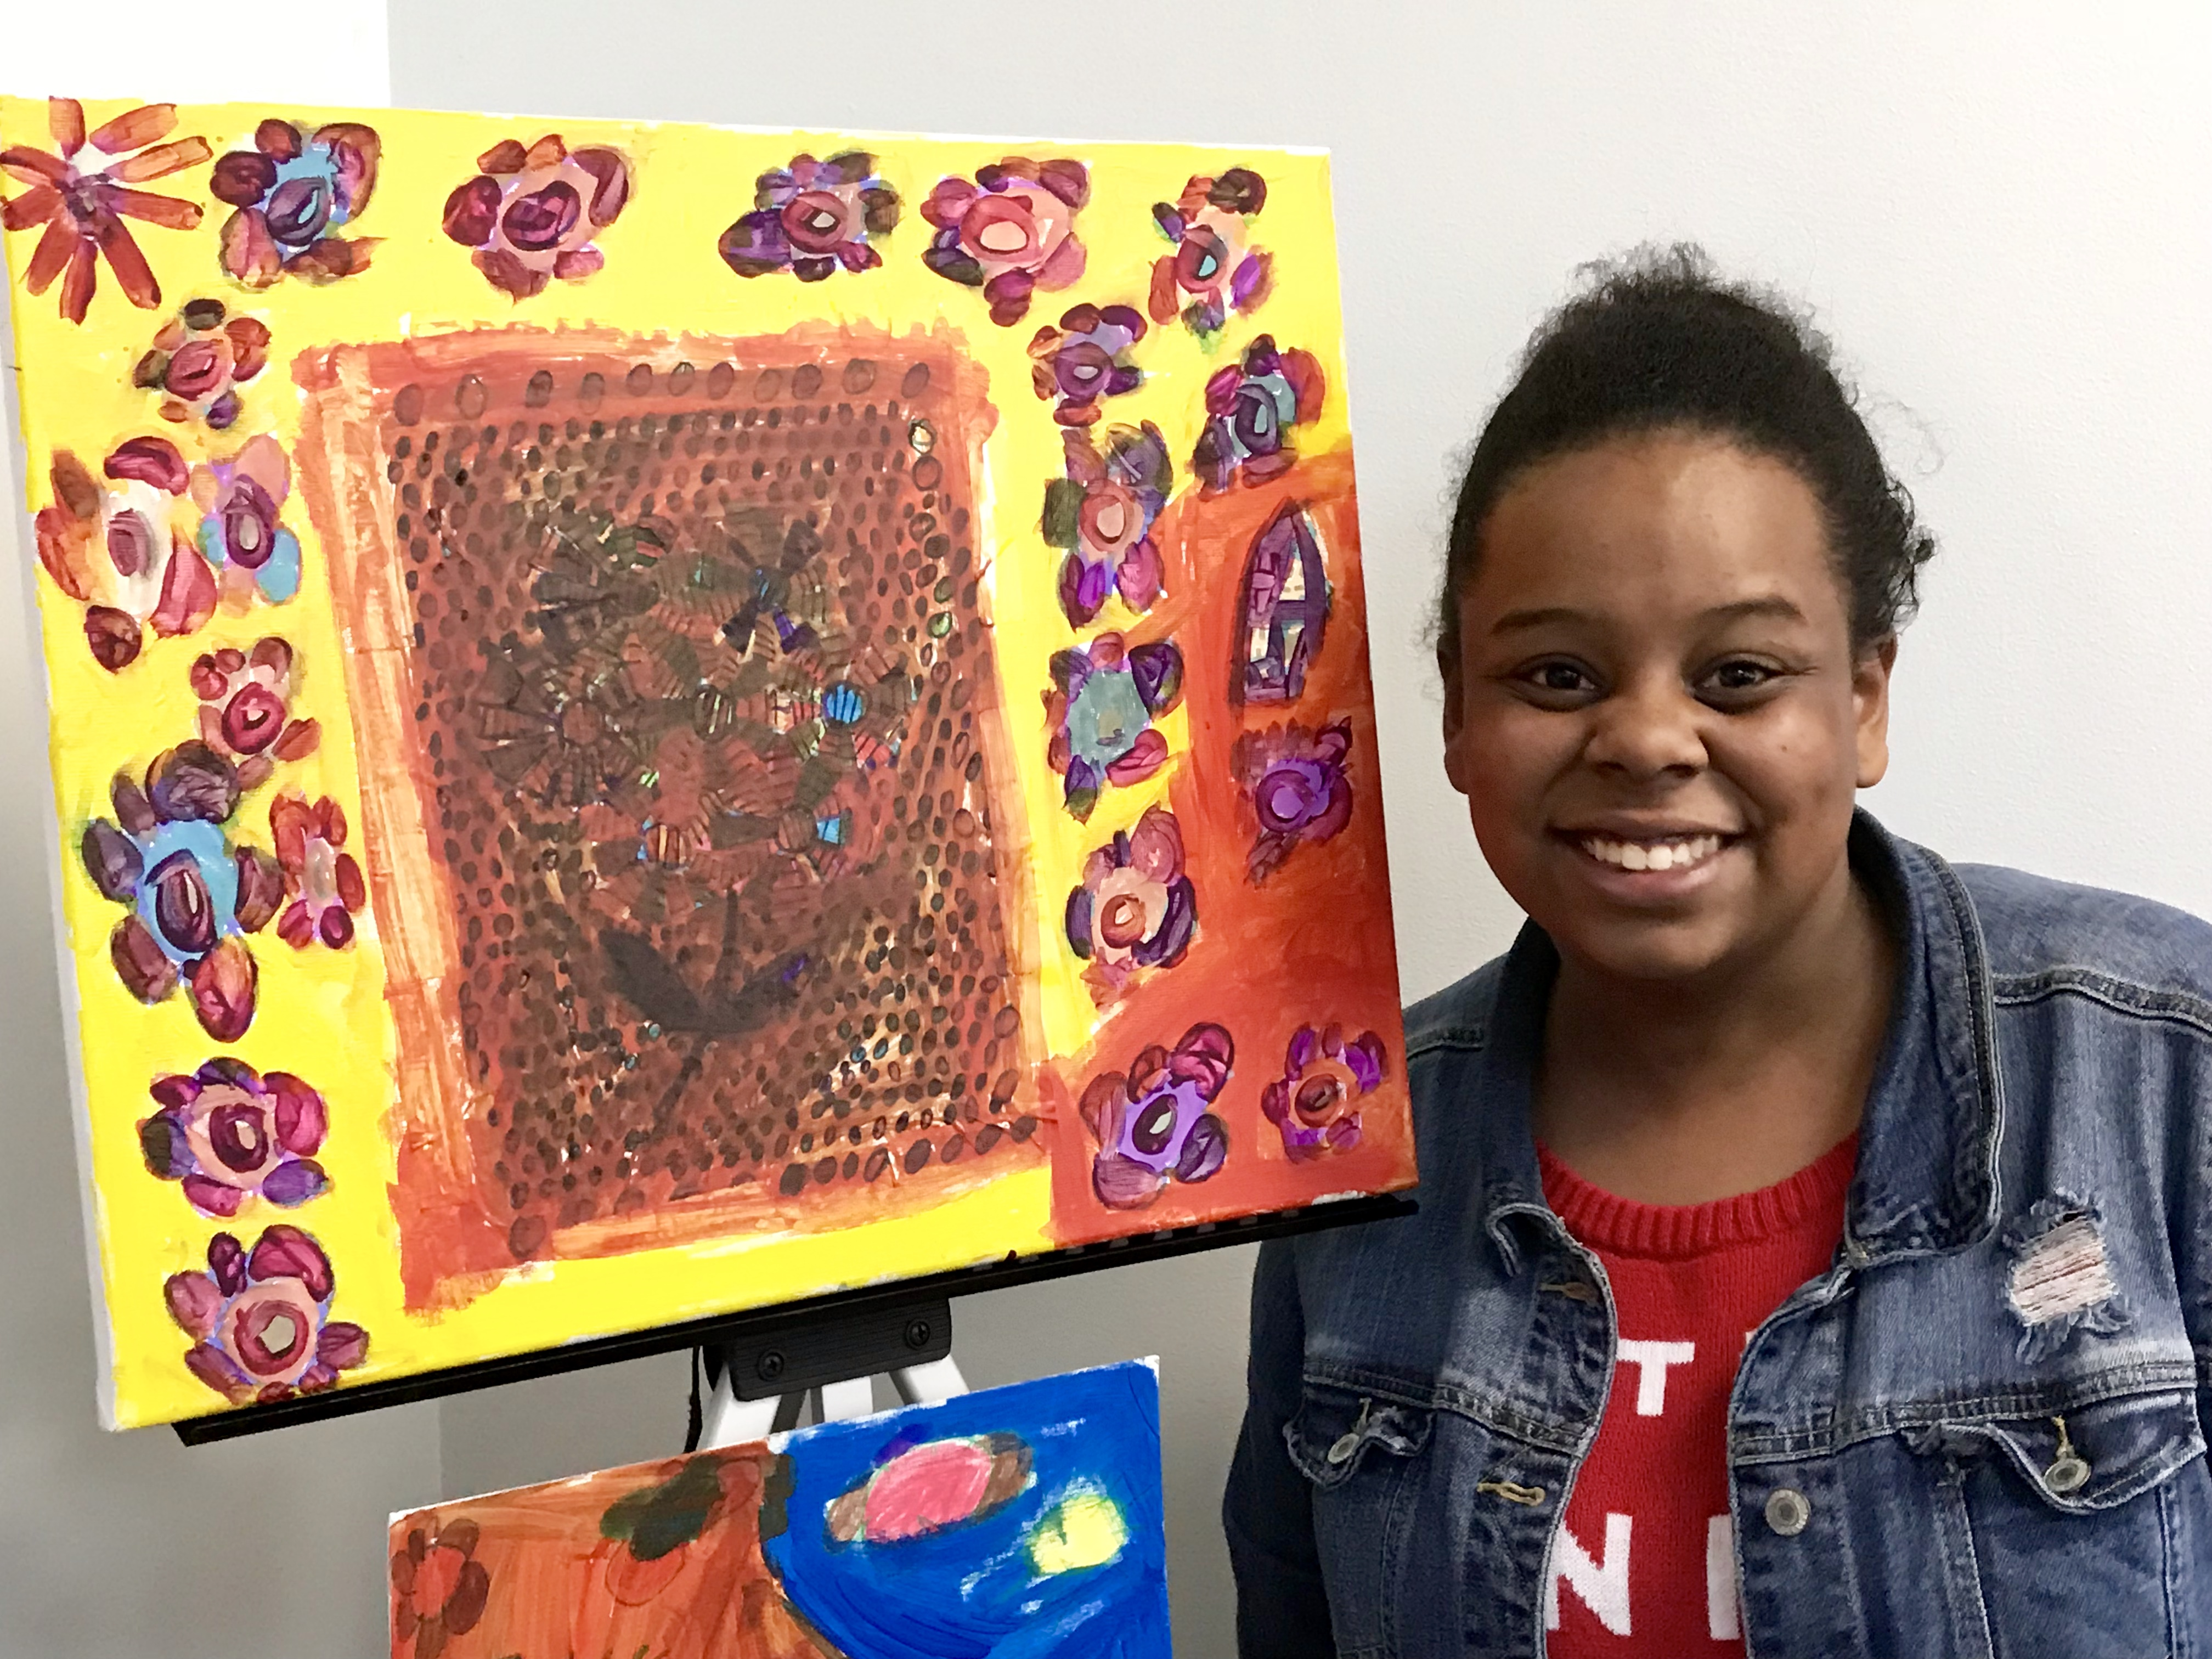 Cassie stands next to her original artwork on display during an exhibit